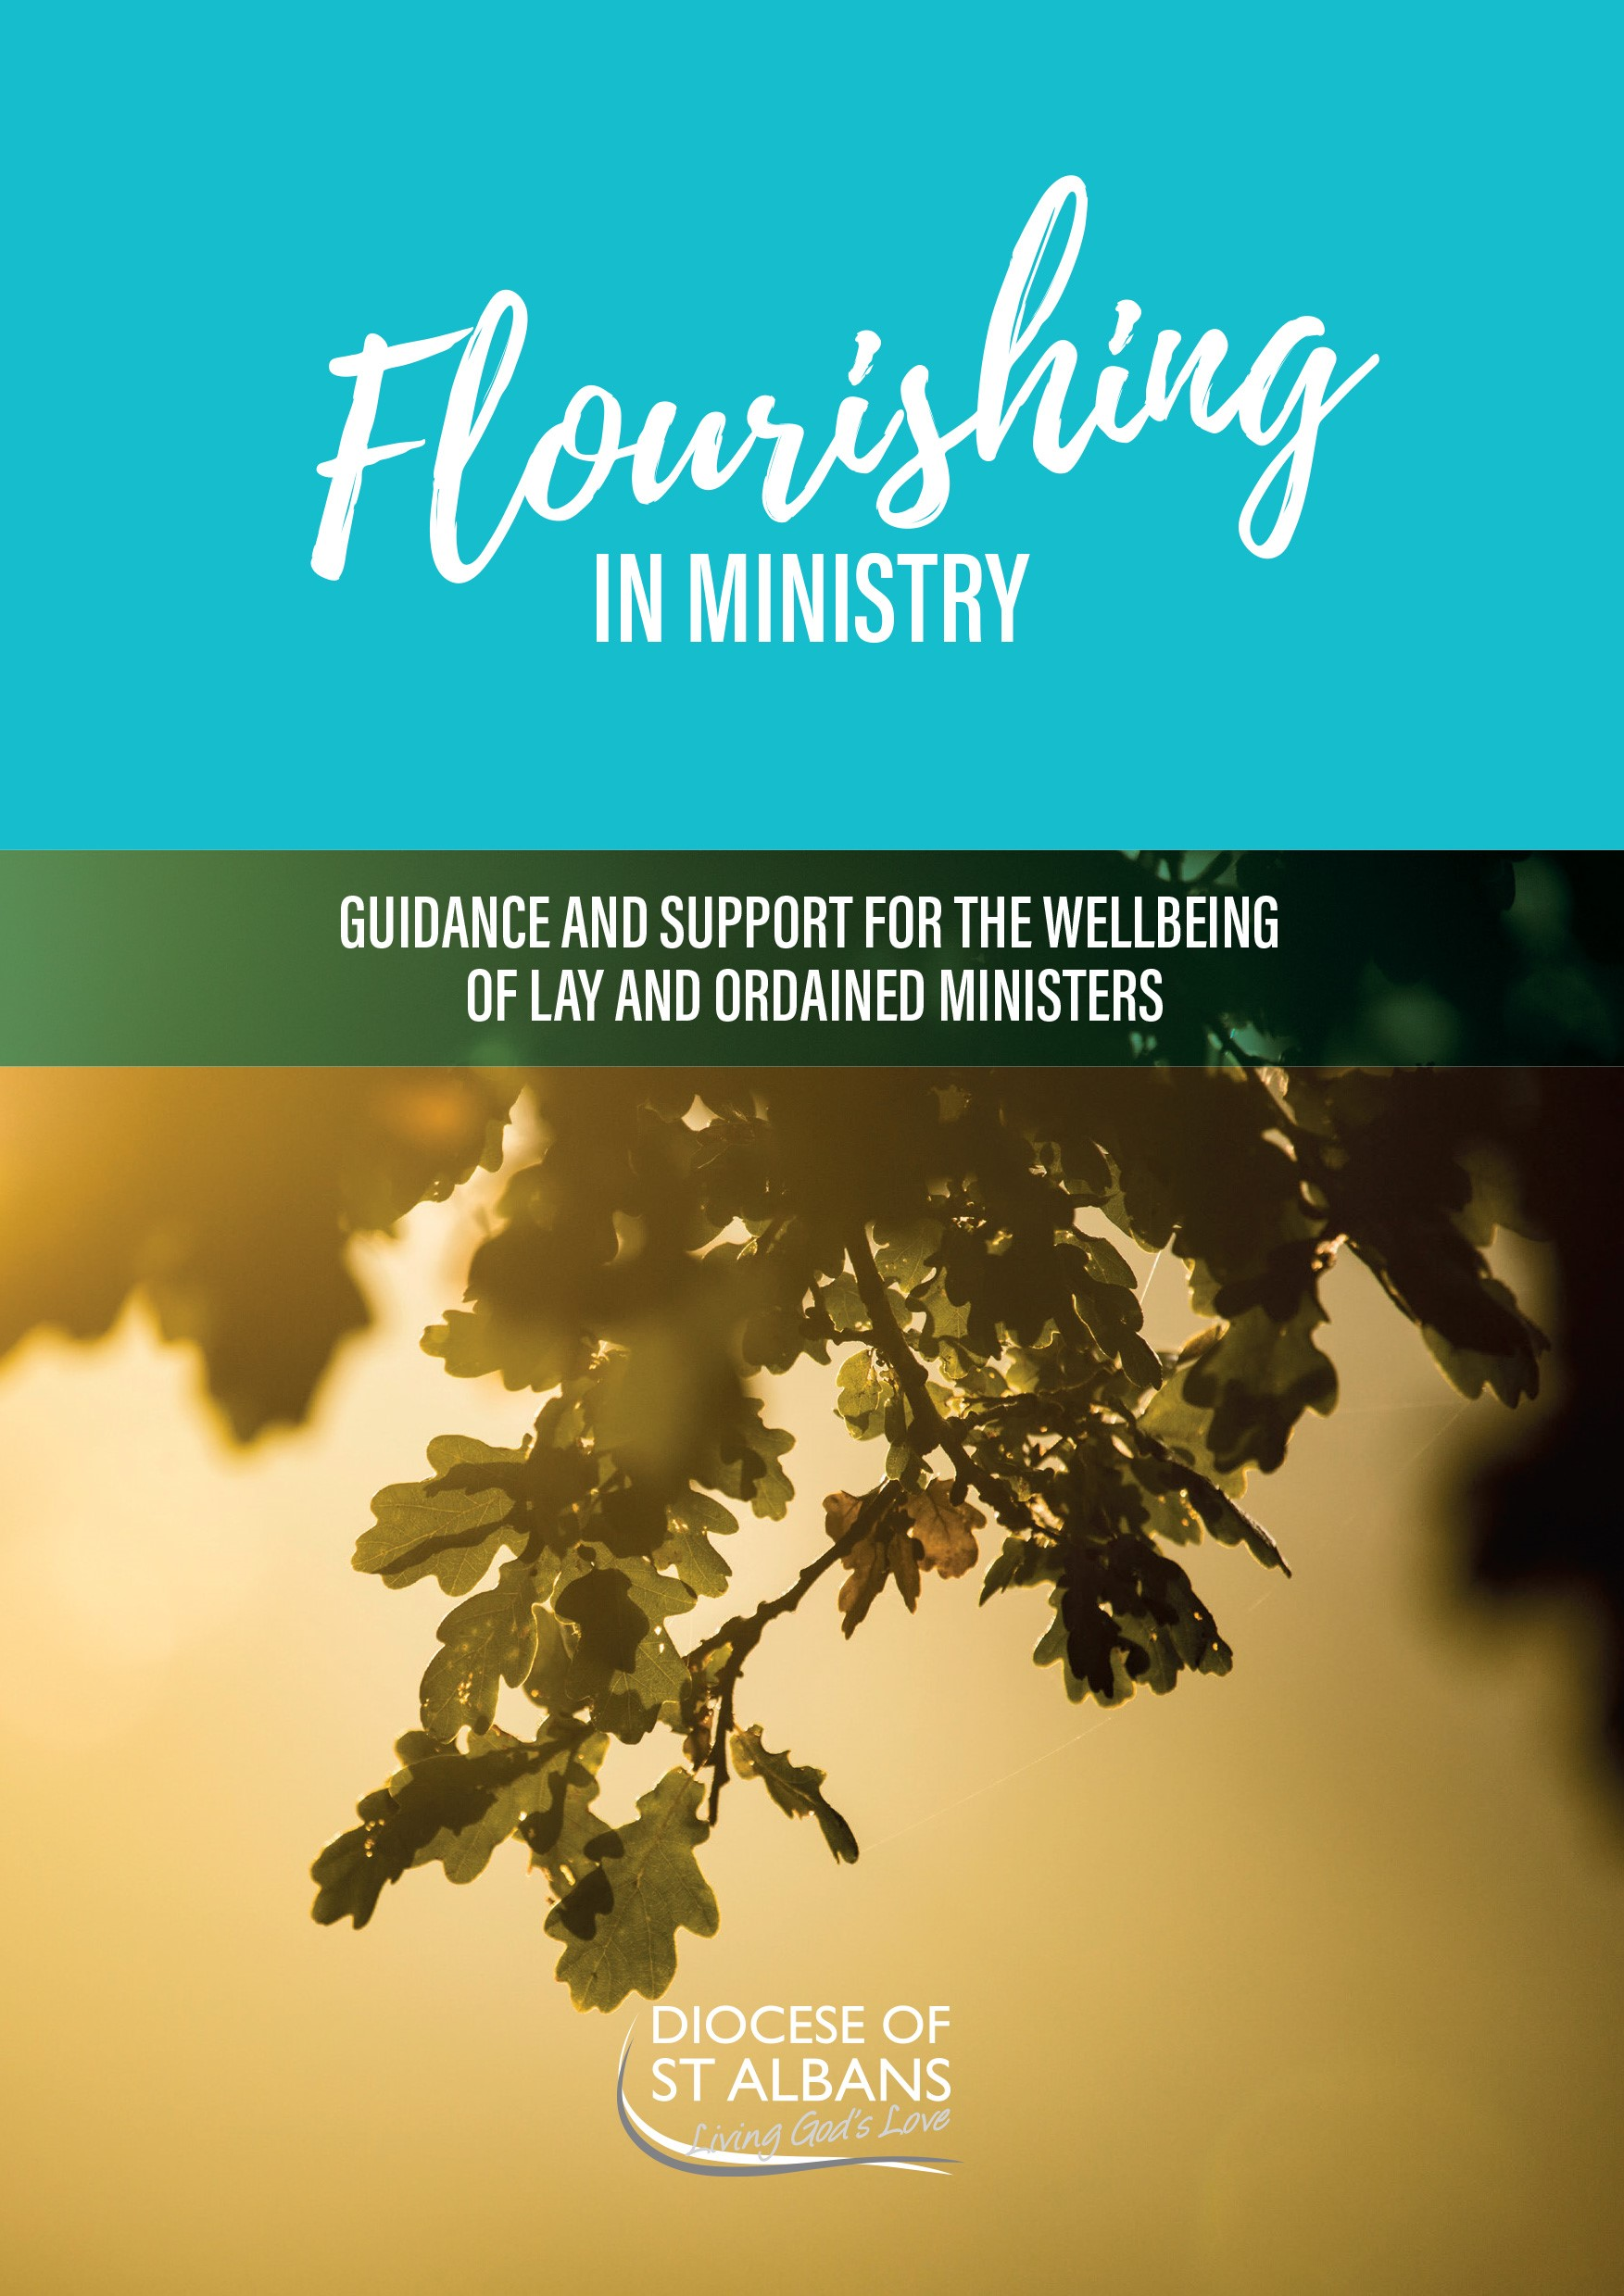 Flourishing in Ministry booklet